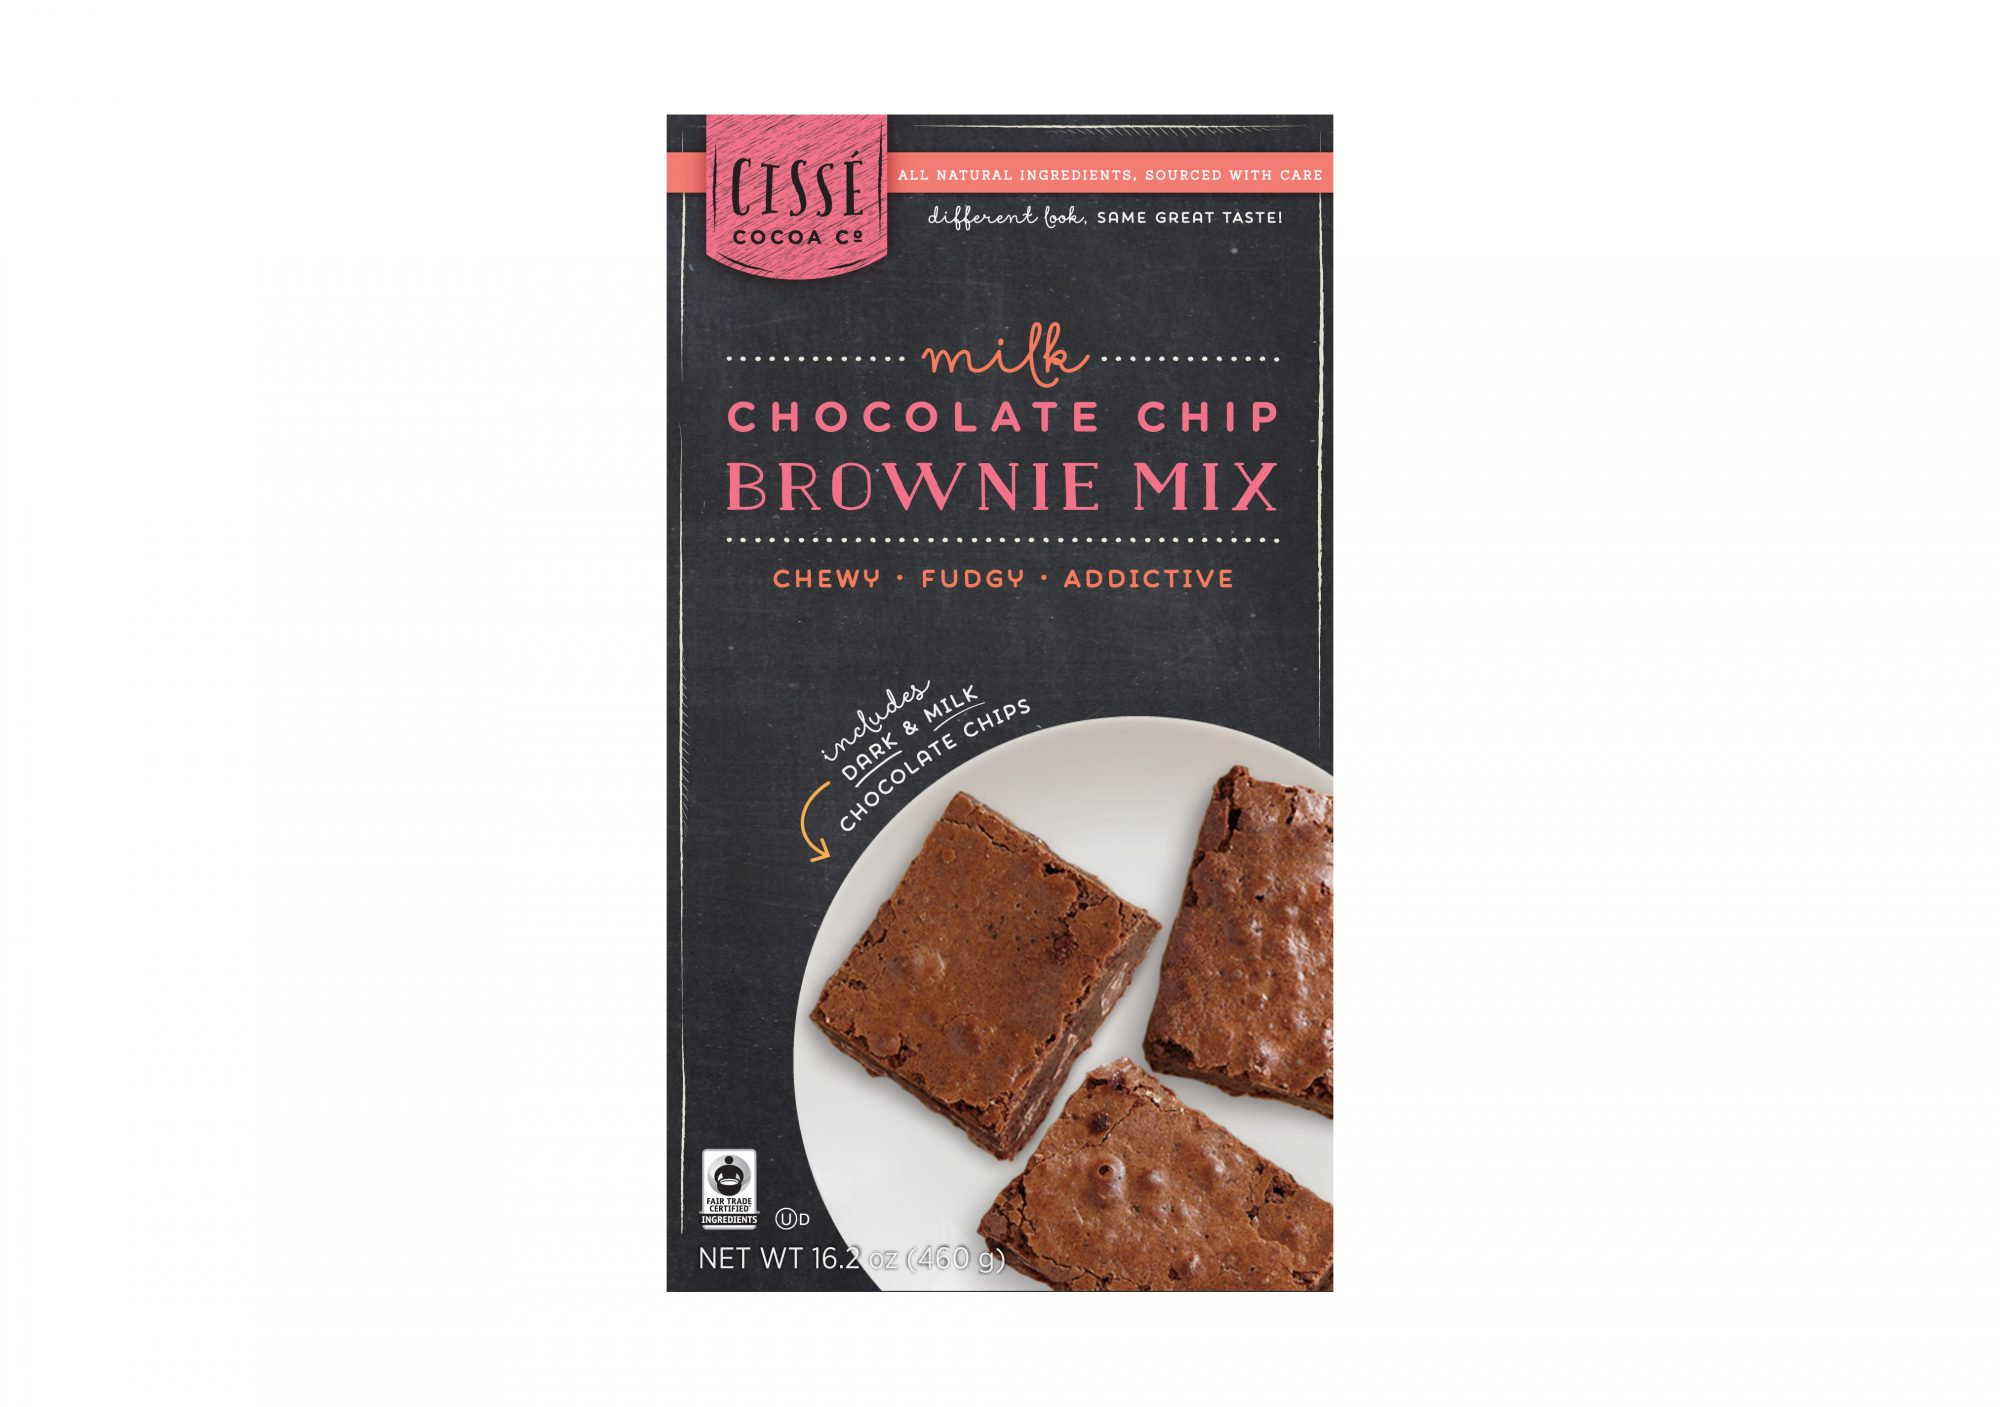 Cissé Trading Co. Milk Chocolate Chip Brownie Mix